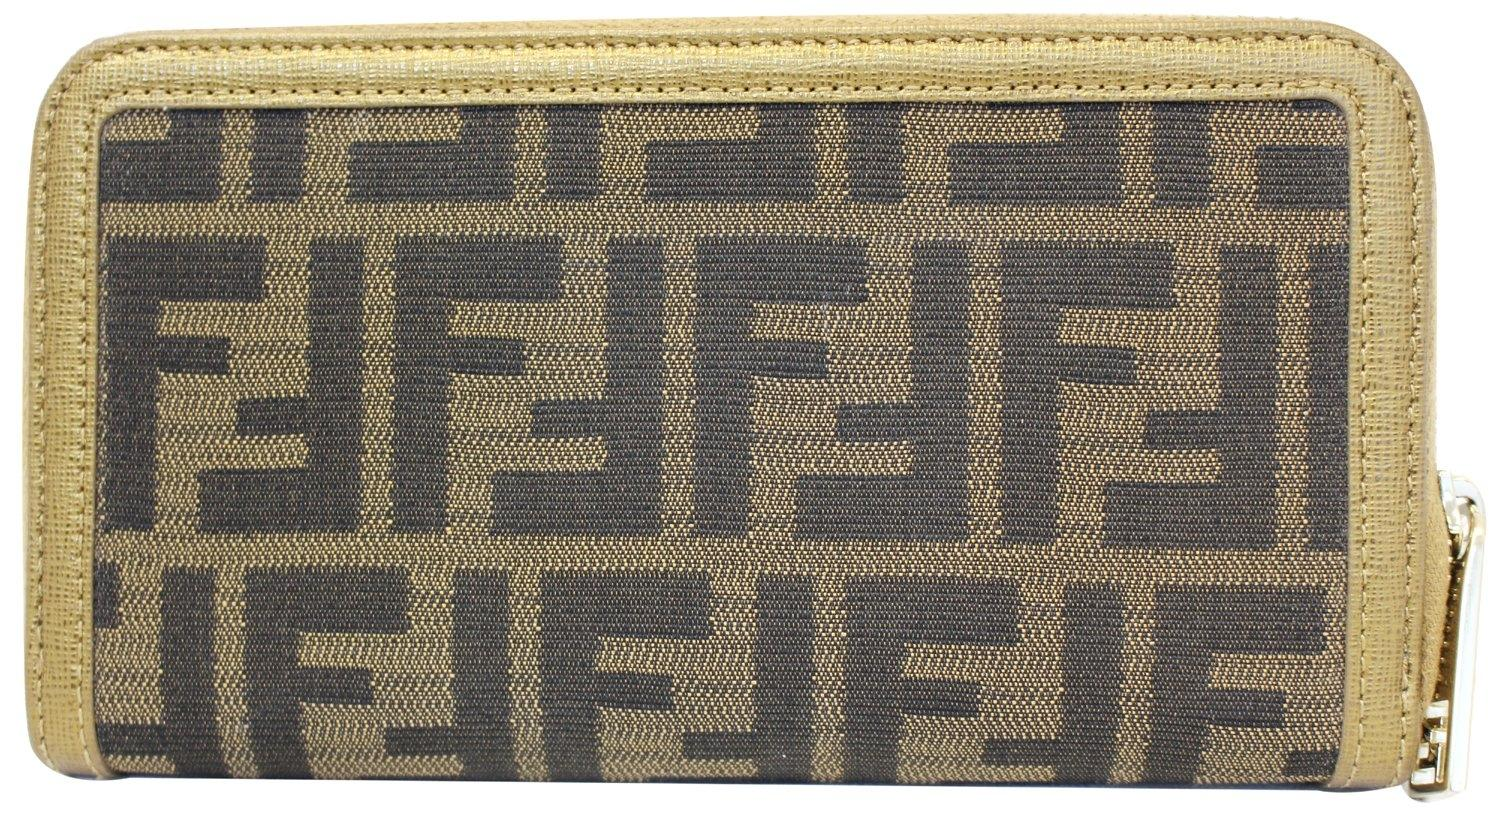 ... buy fendi wallets on sale up to 70 off at tradesy 11a16 c357a ... 4f52935852ea6